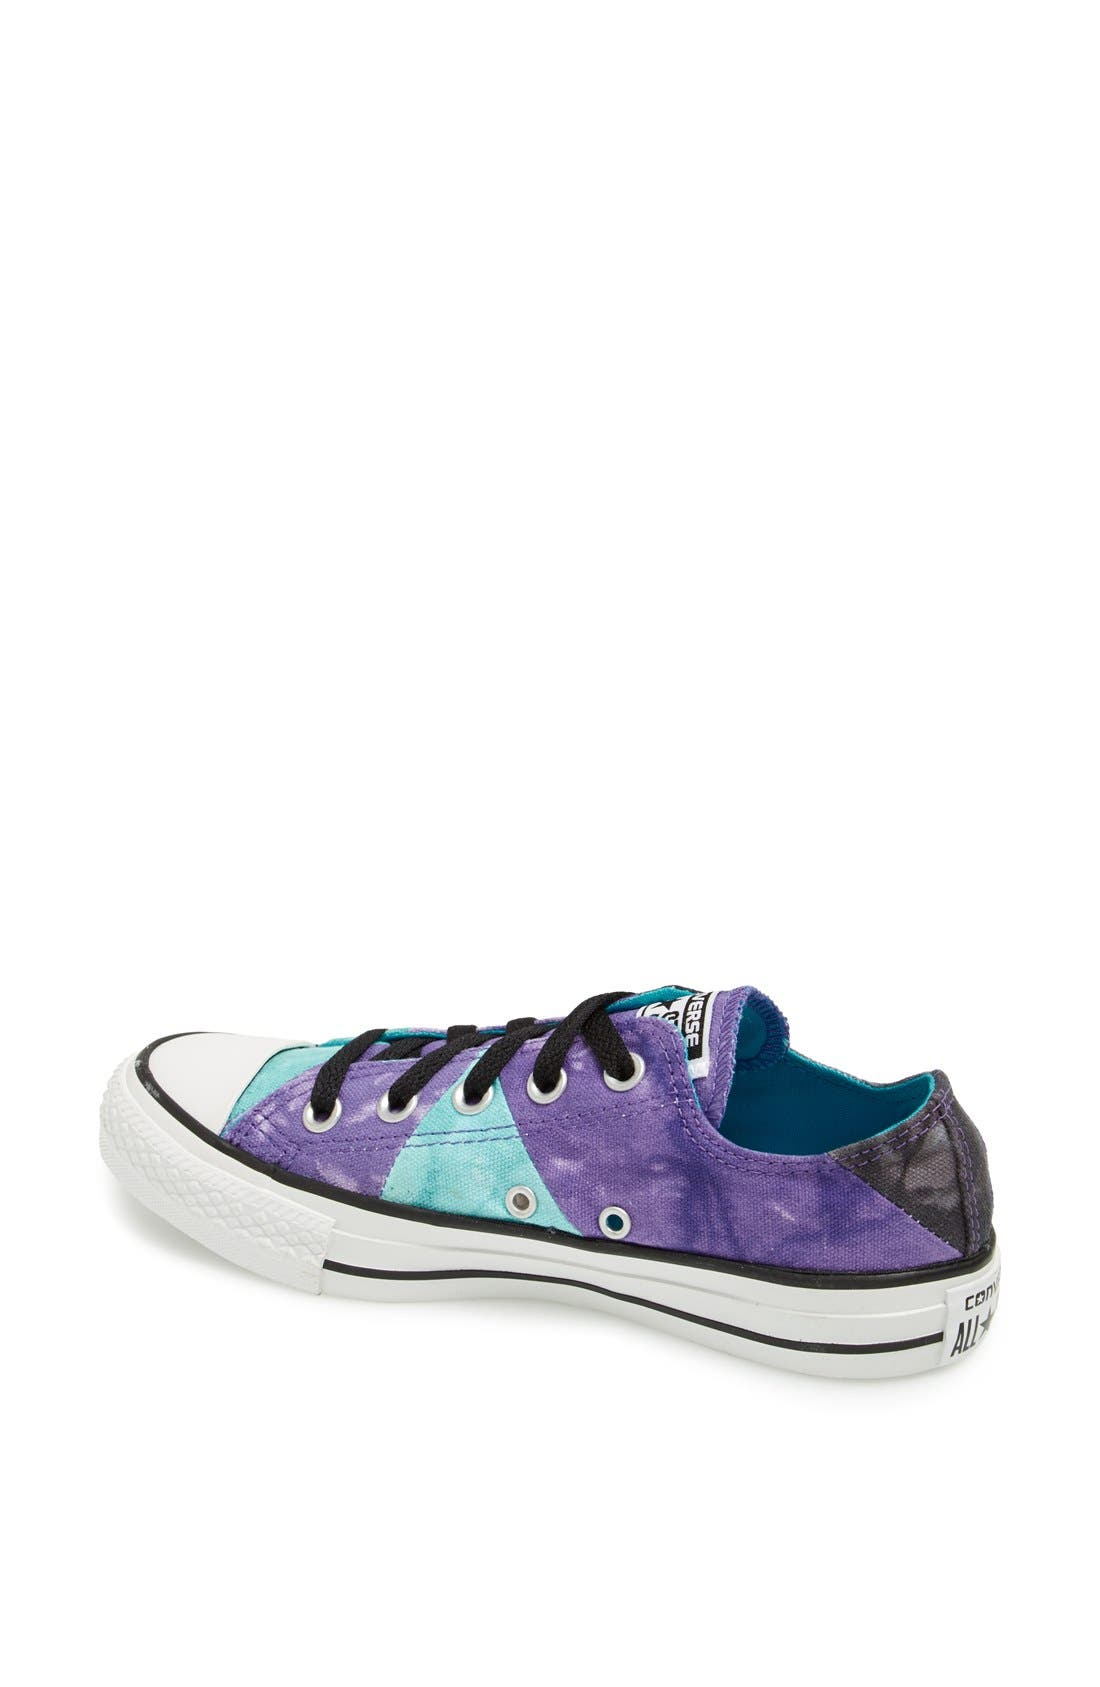 Alternate Image 2  - Converse Chuck Taylor® All Star® 'Multi Panel' Low Top Sneaker (Women)